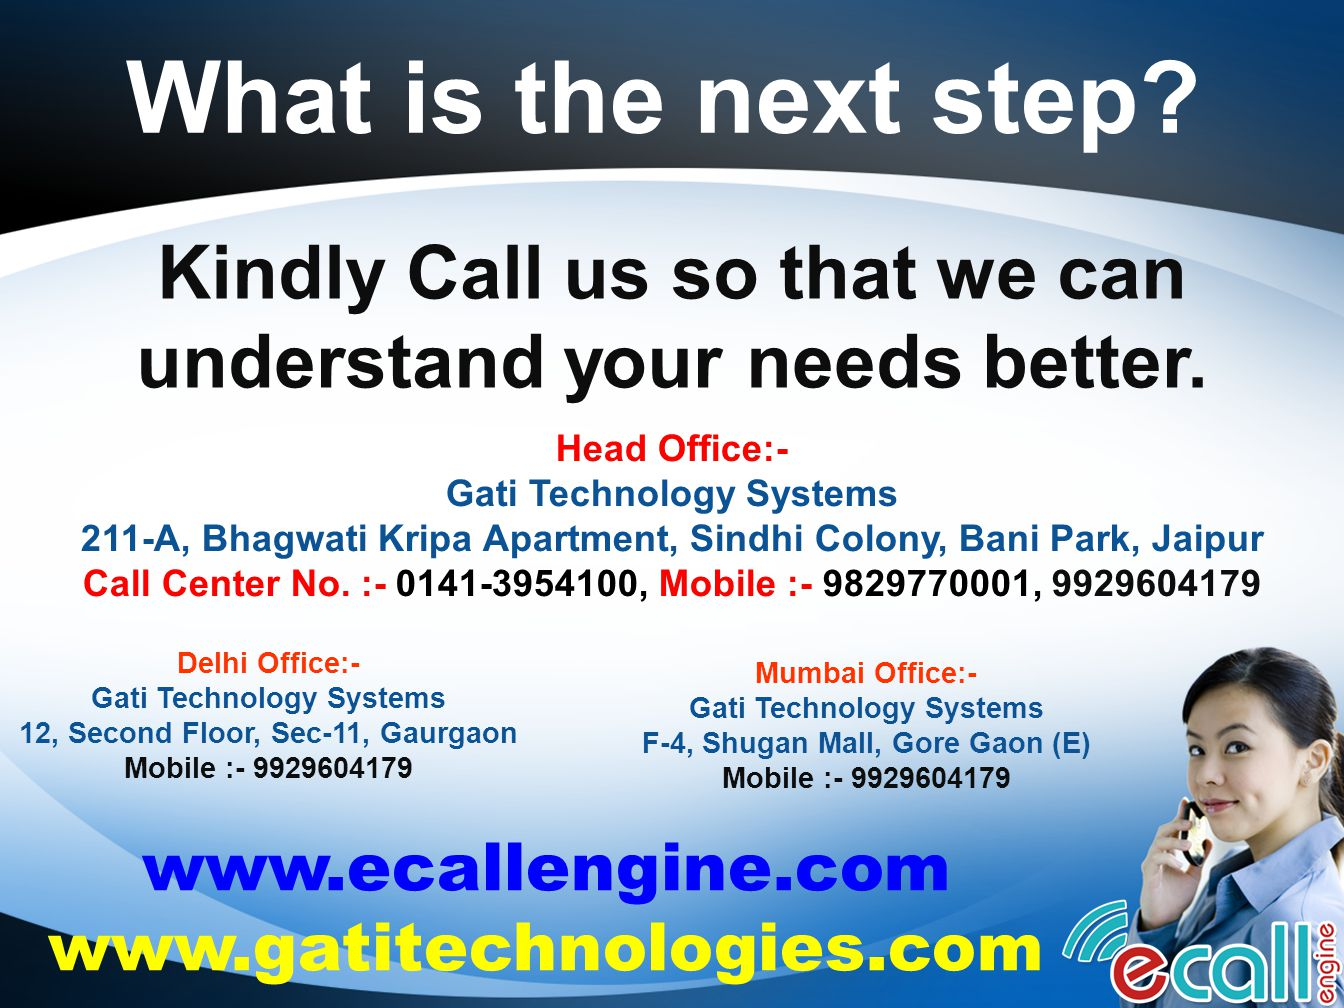 What is the next step? Kindly Call us so that we can understand your needs better. Head Office:- Gati Technology Systems 211-A, Bhagwati Kripa Apartme